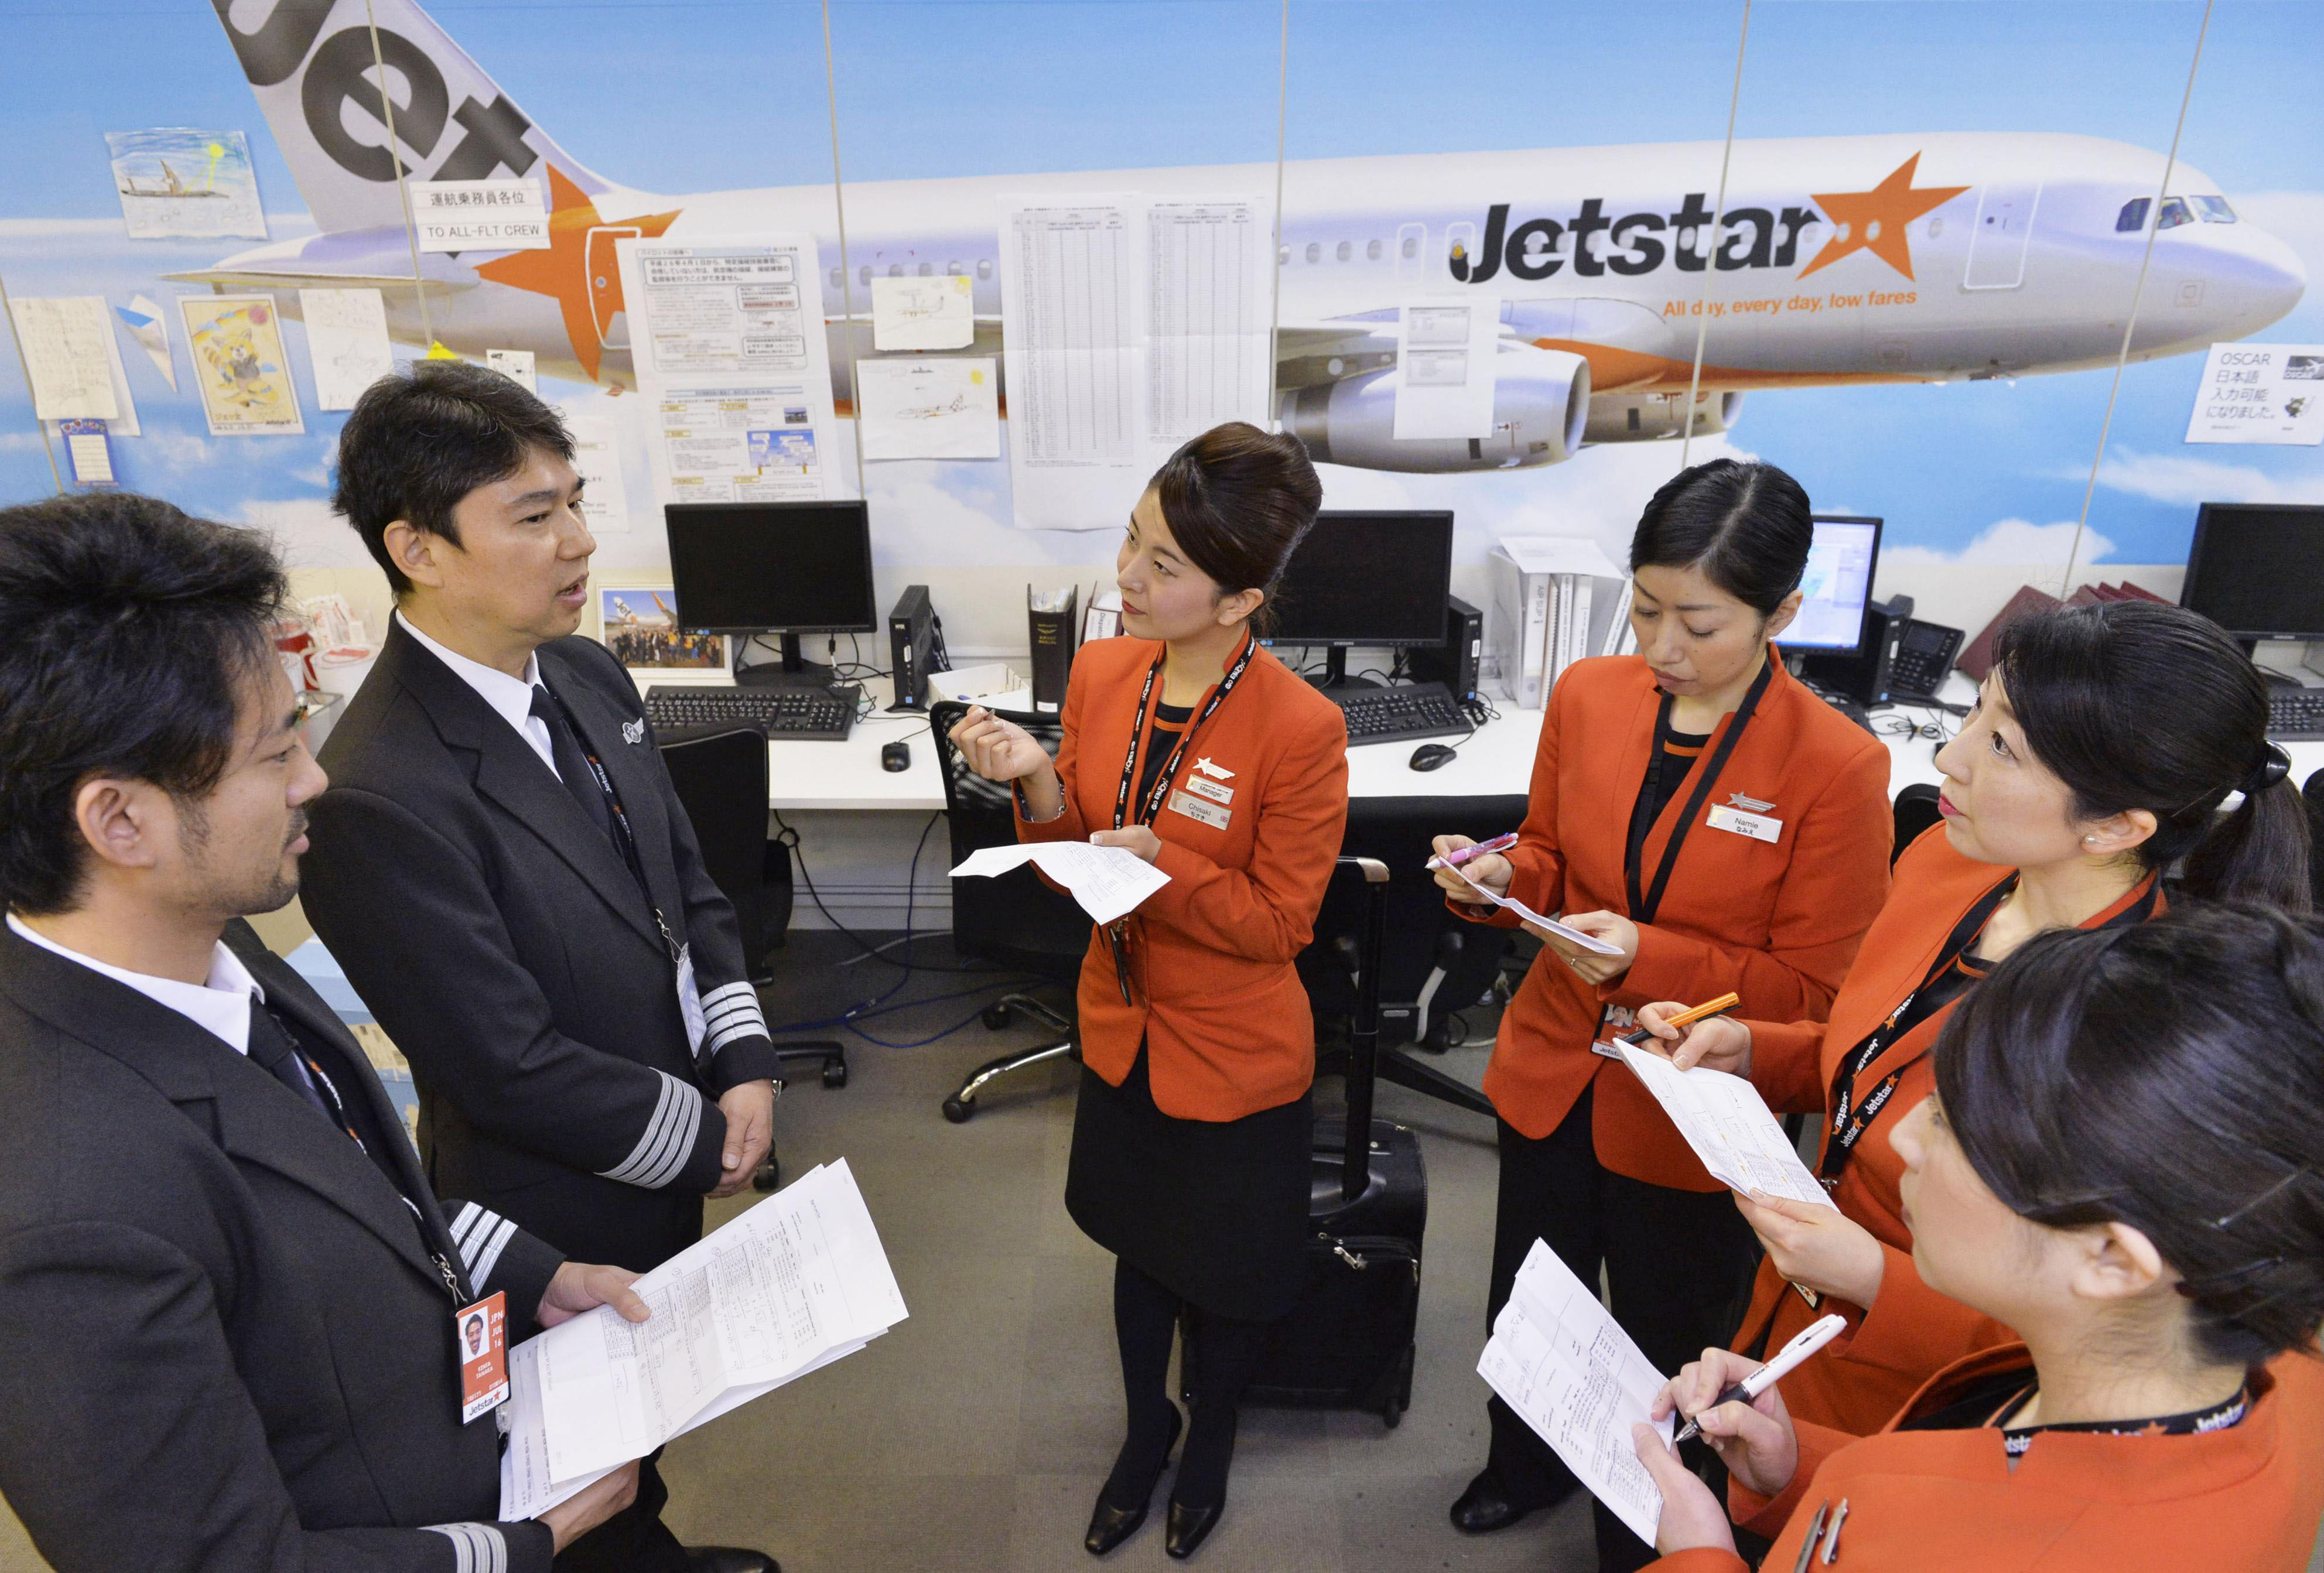 Pilots for Jetstar Japan brief the cabin staff before departing from Narita International Airport on Jan. 22. LCCs are facing an acute pilot shortage that is crimping their expansion plans. | KYODO